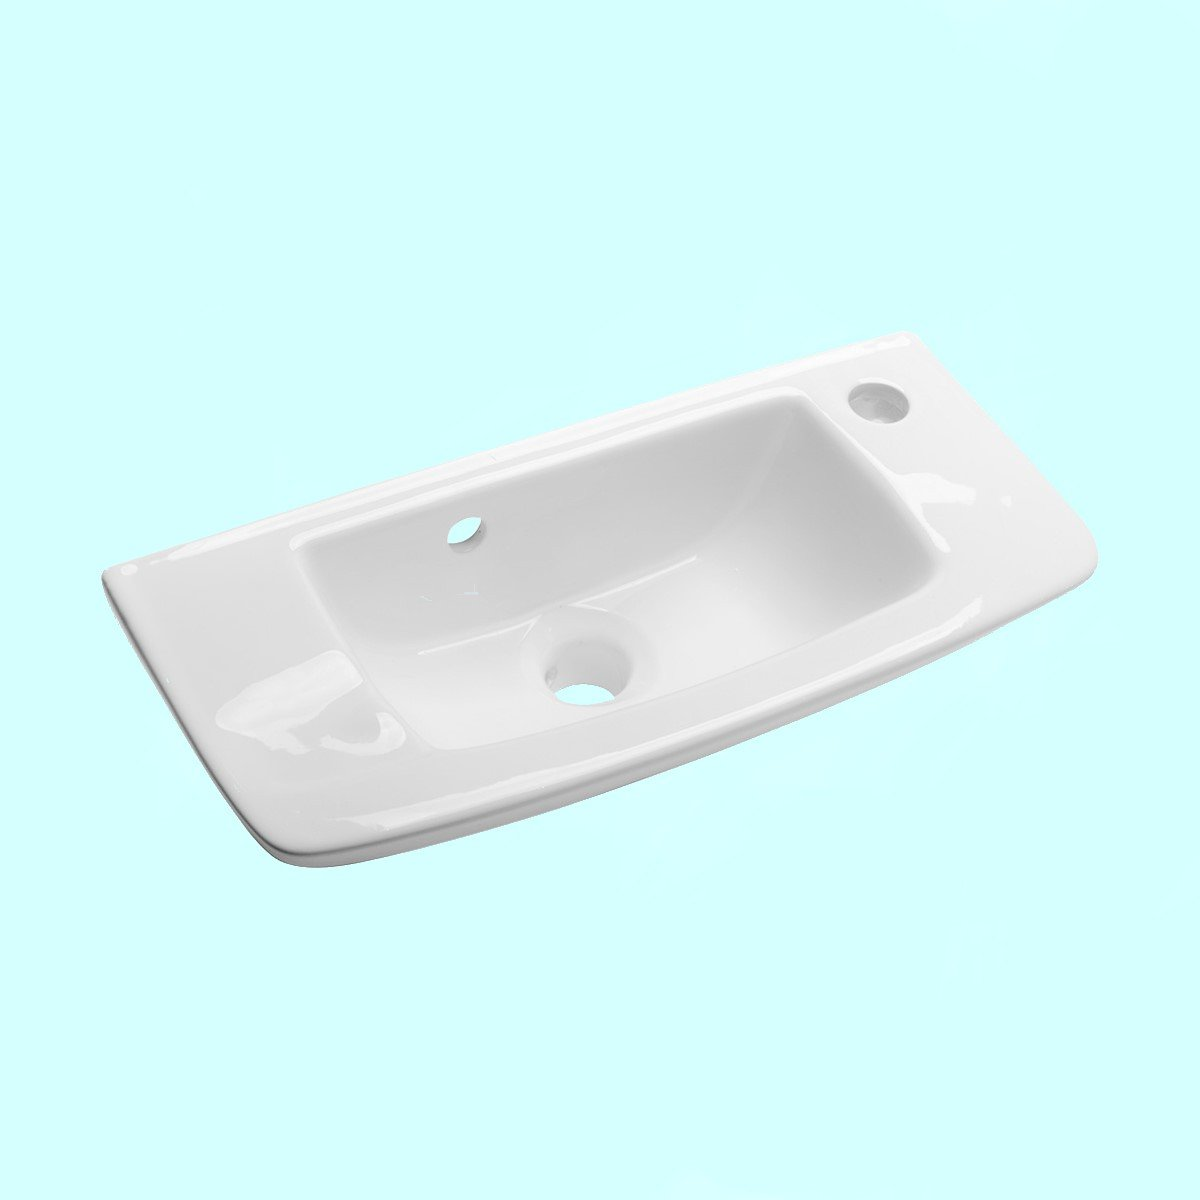 Swell 20 Small Wall Mount Sink White With Overflow Rectangle Space Saving Compact Design Scratch And Stain Resistant Porcelain Ceramic Renovators Supply Home Interior And Landscaping Sapresignezvosmurscom